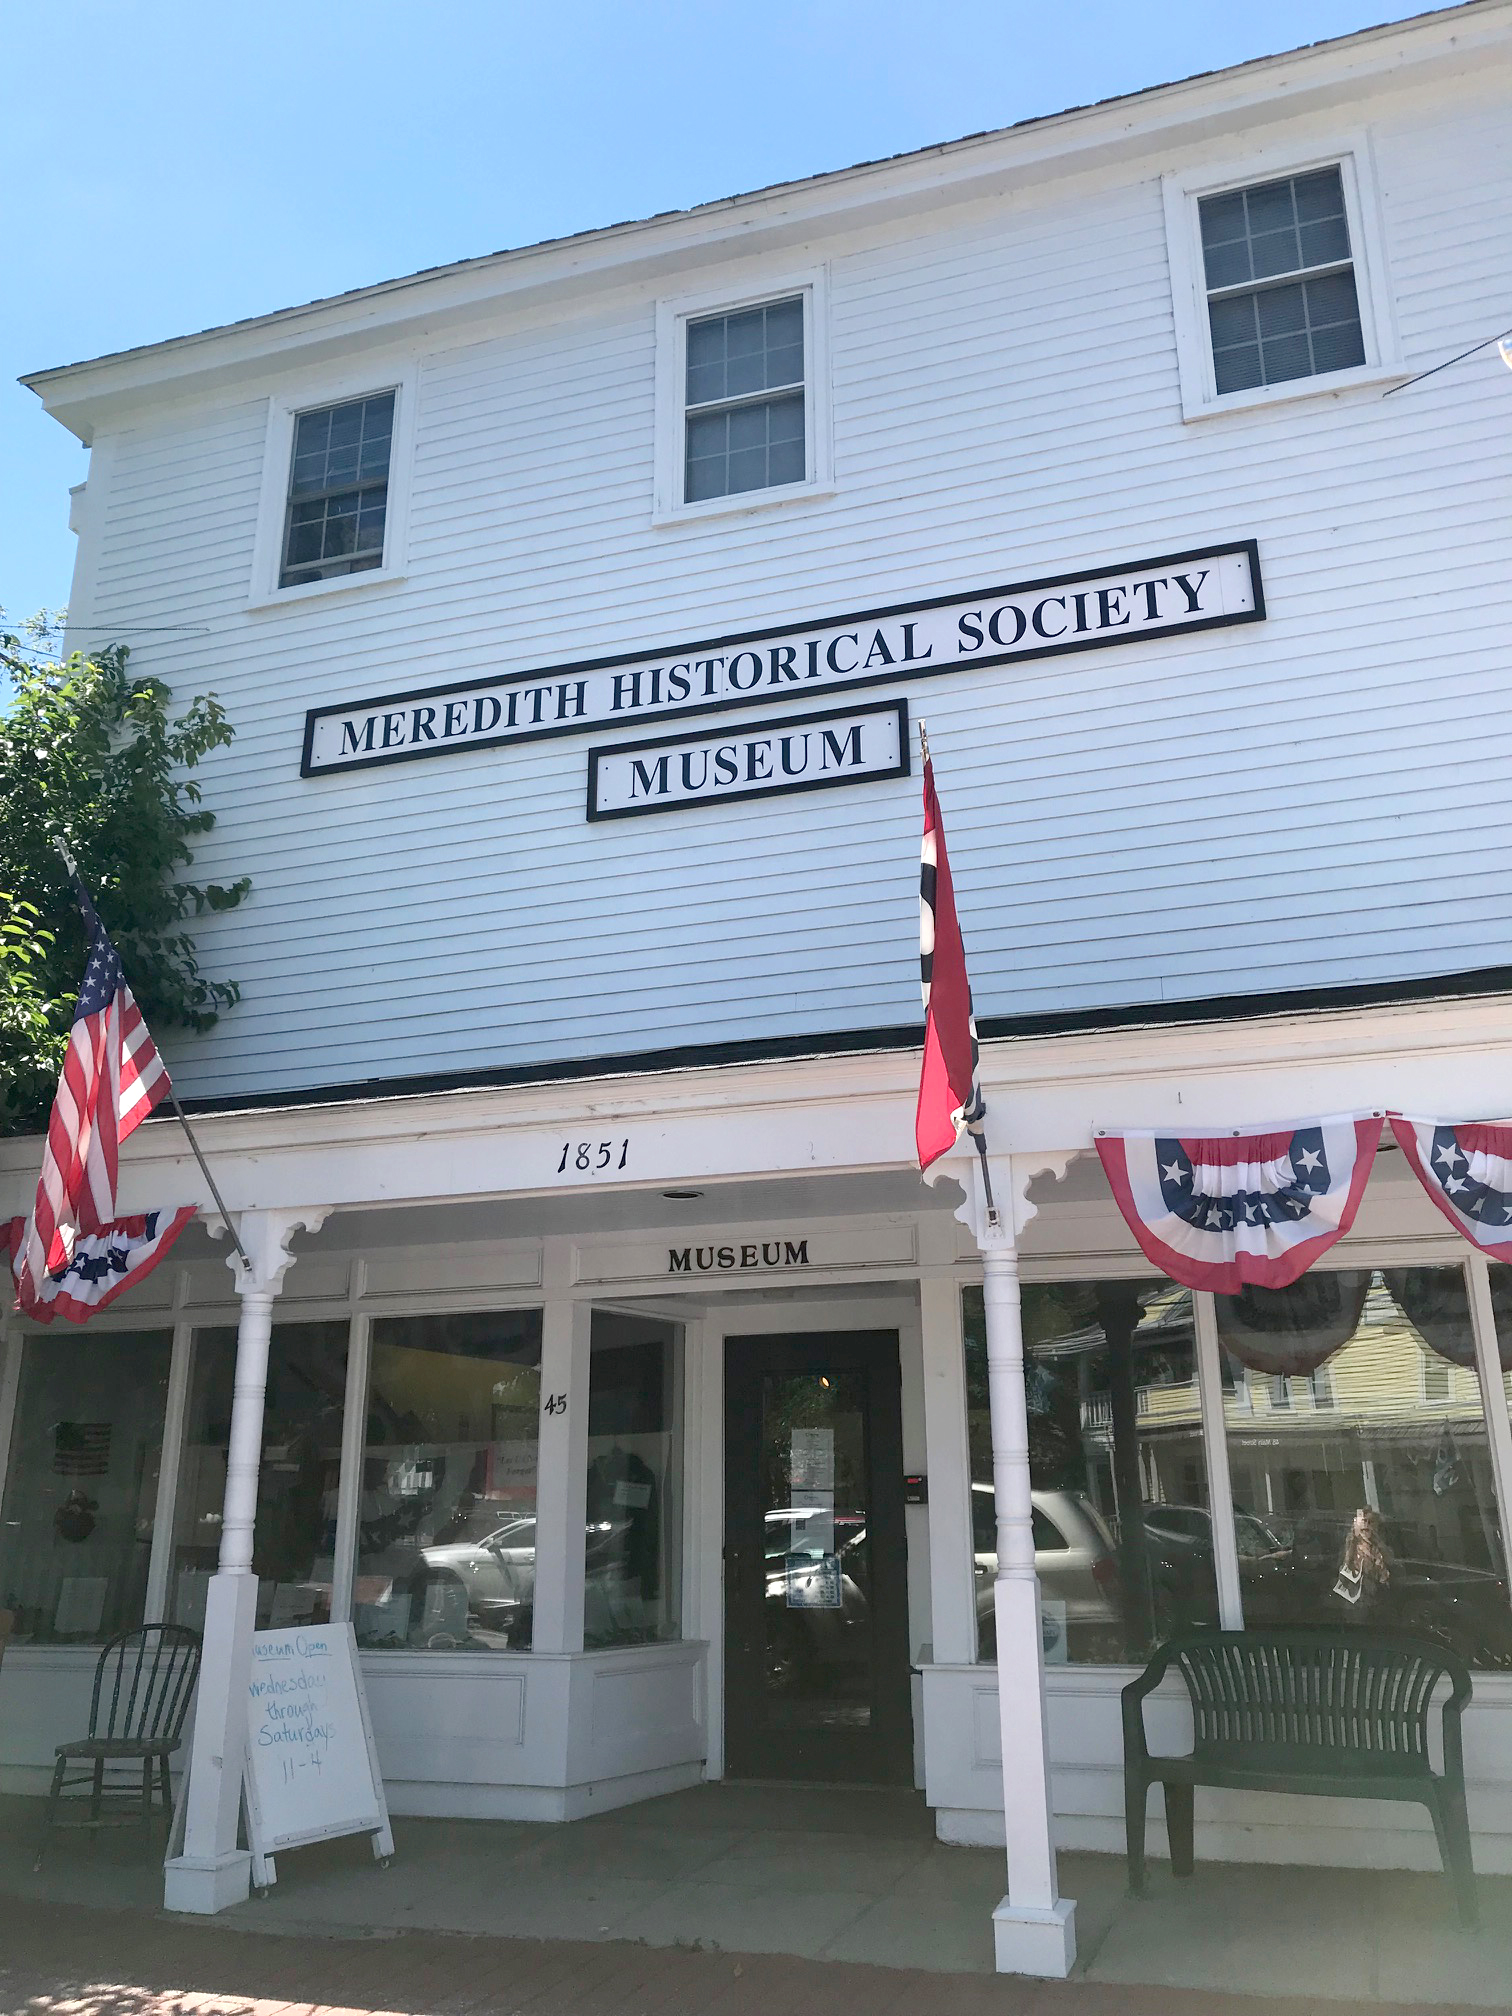 Meredith Historical Society Museum